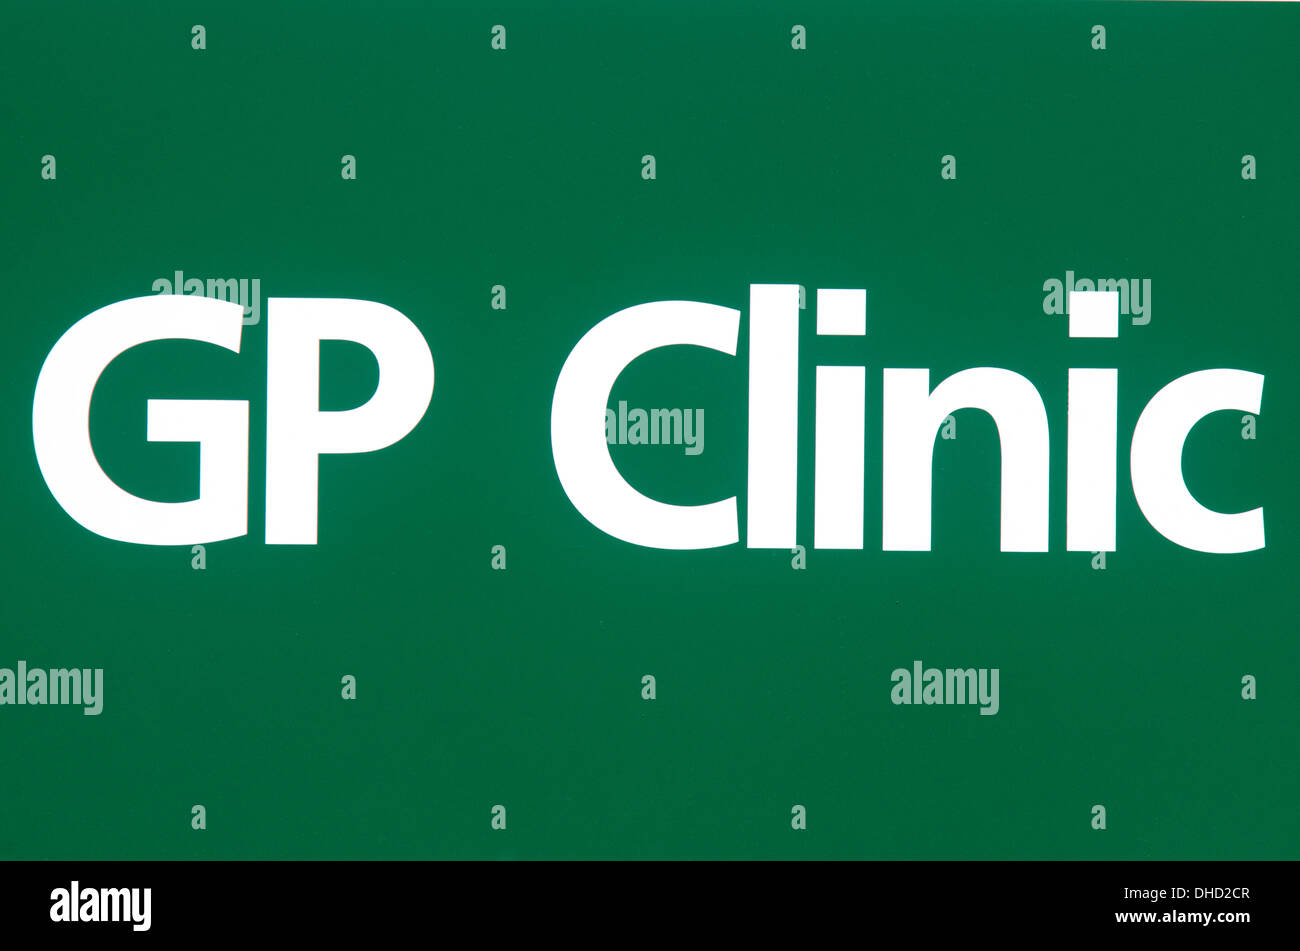 Adult Clinic, Pushkino: services, address and reviews 20